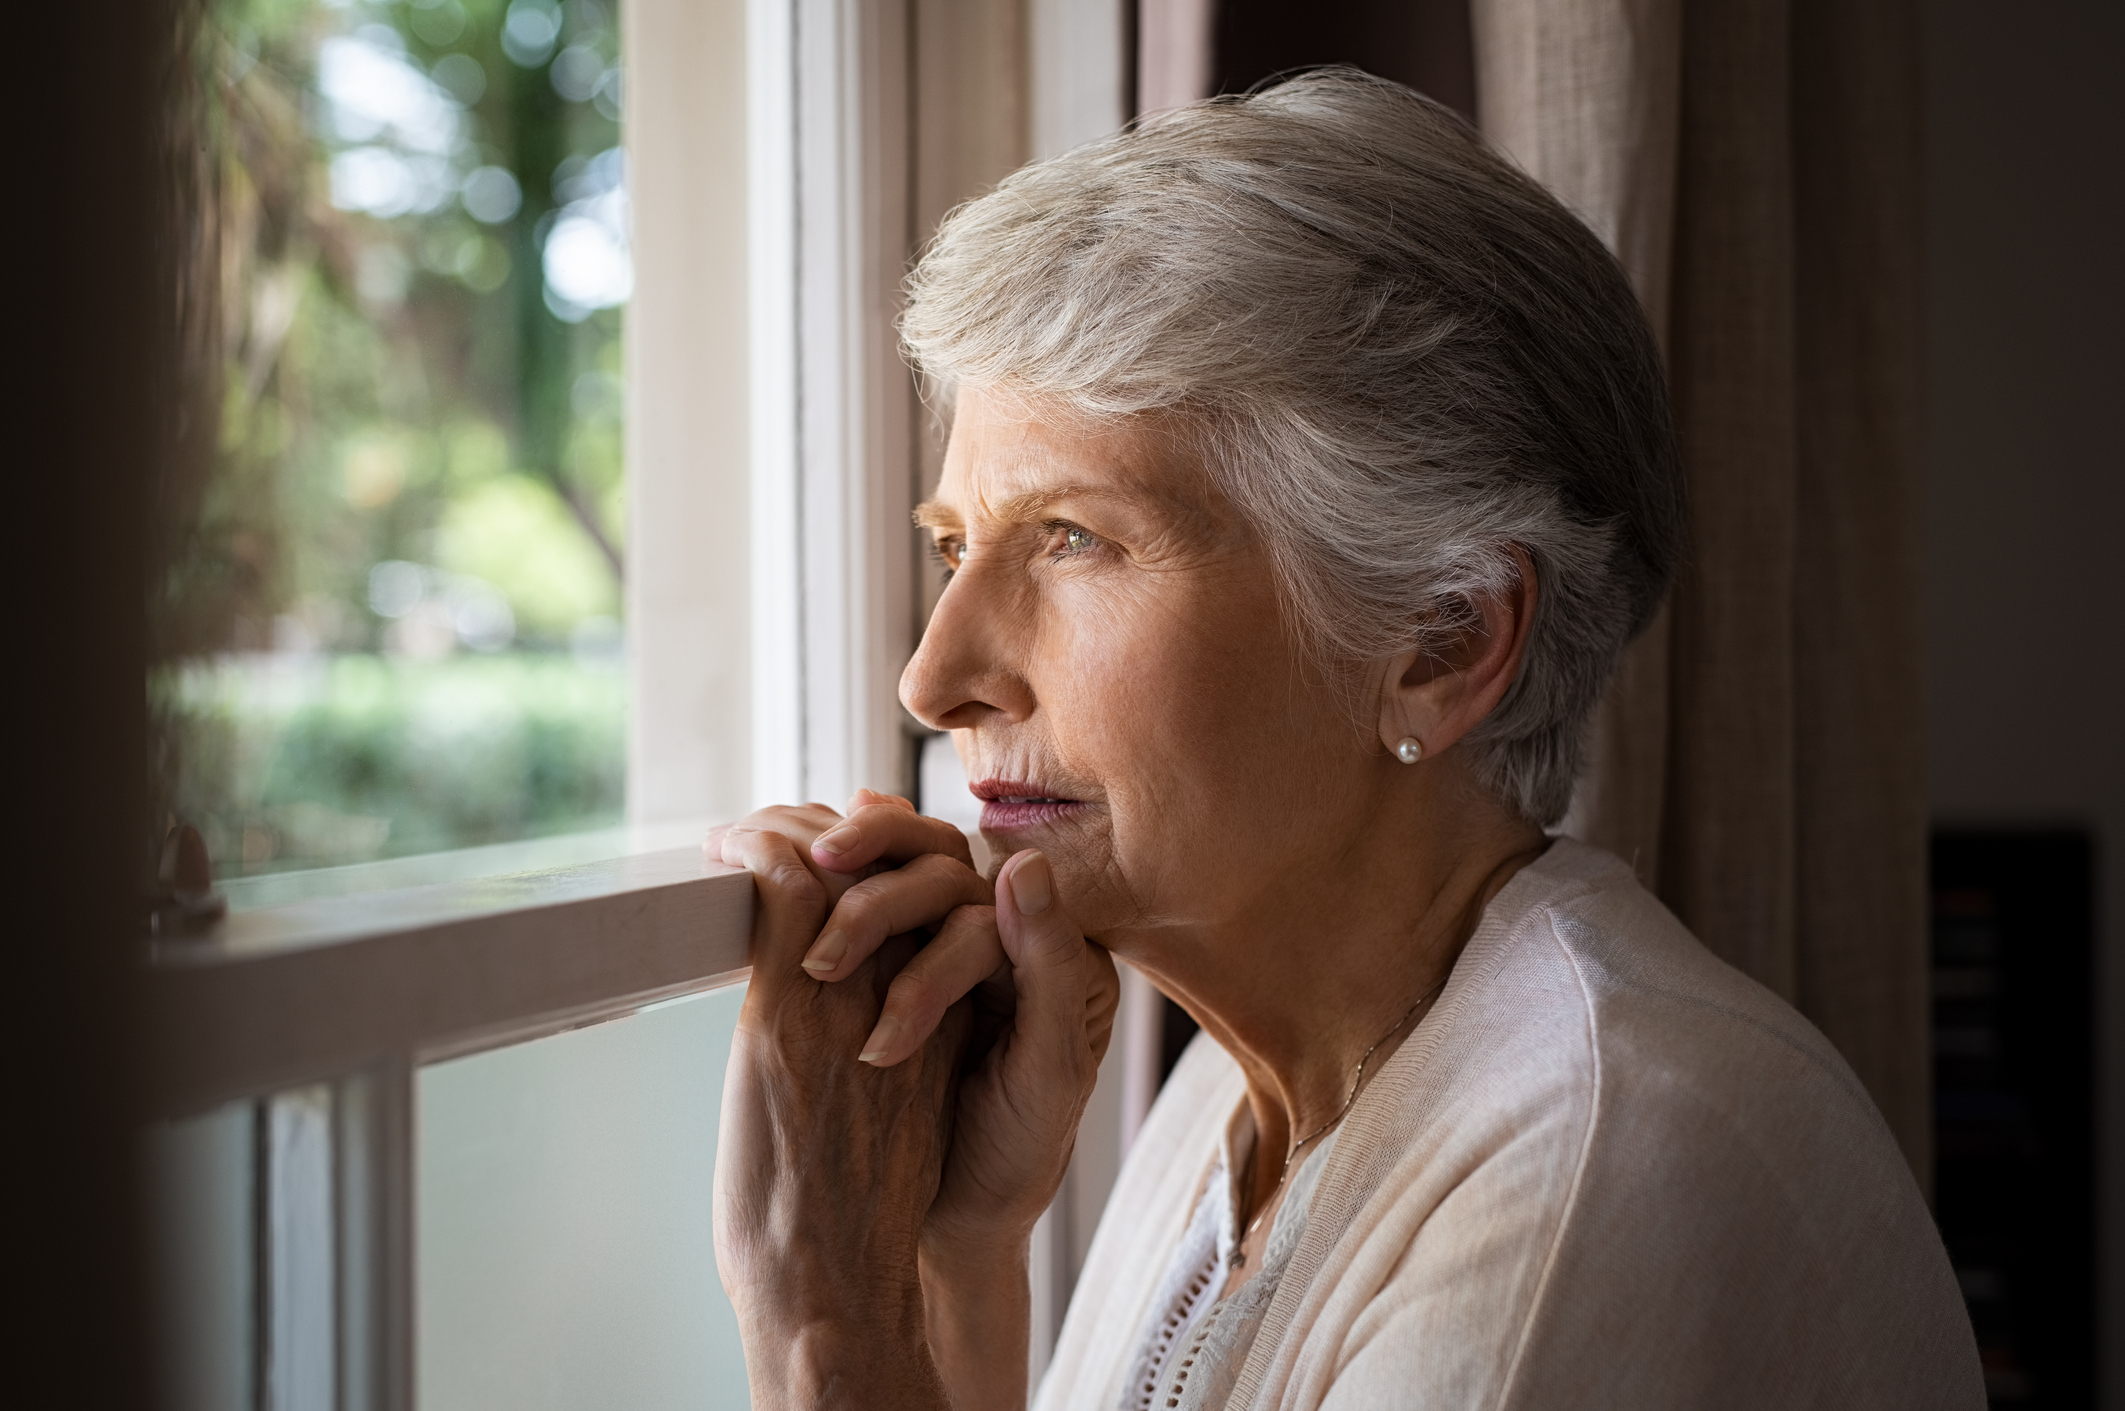 Patients with dementia and their experience with GPs